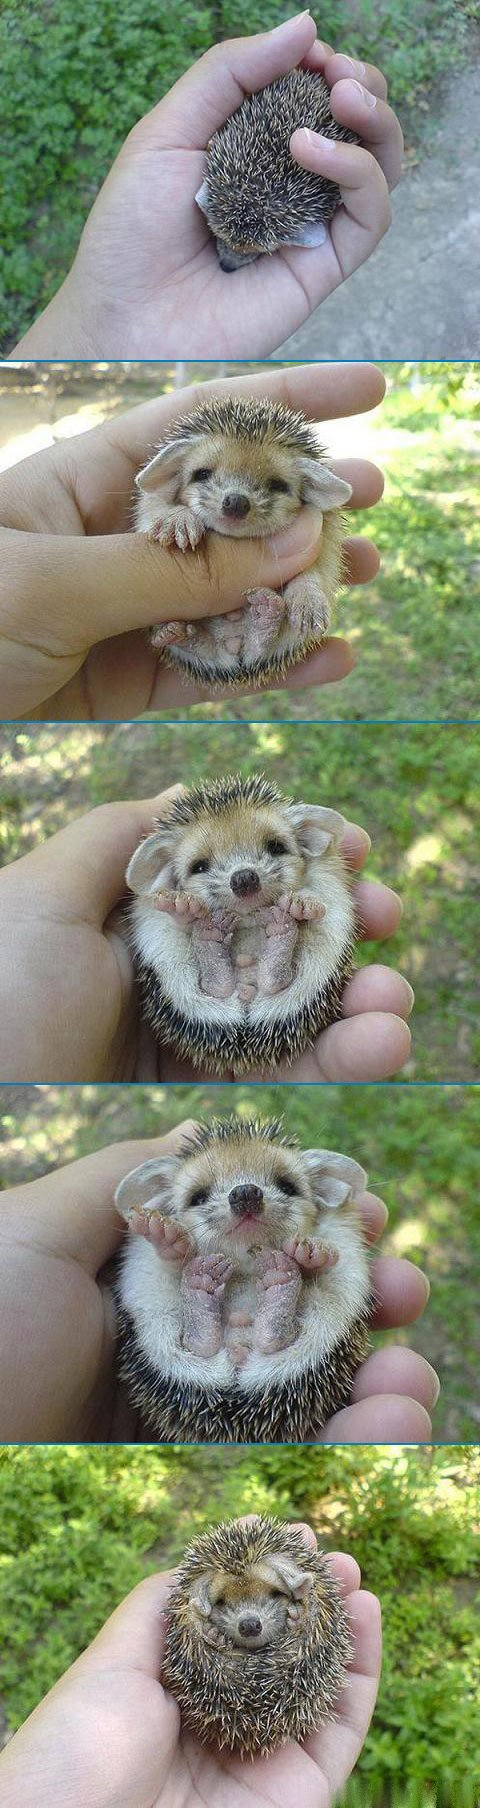 Cute little fella